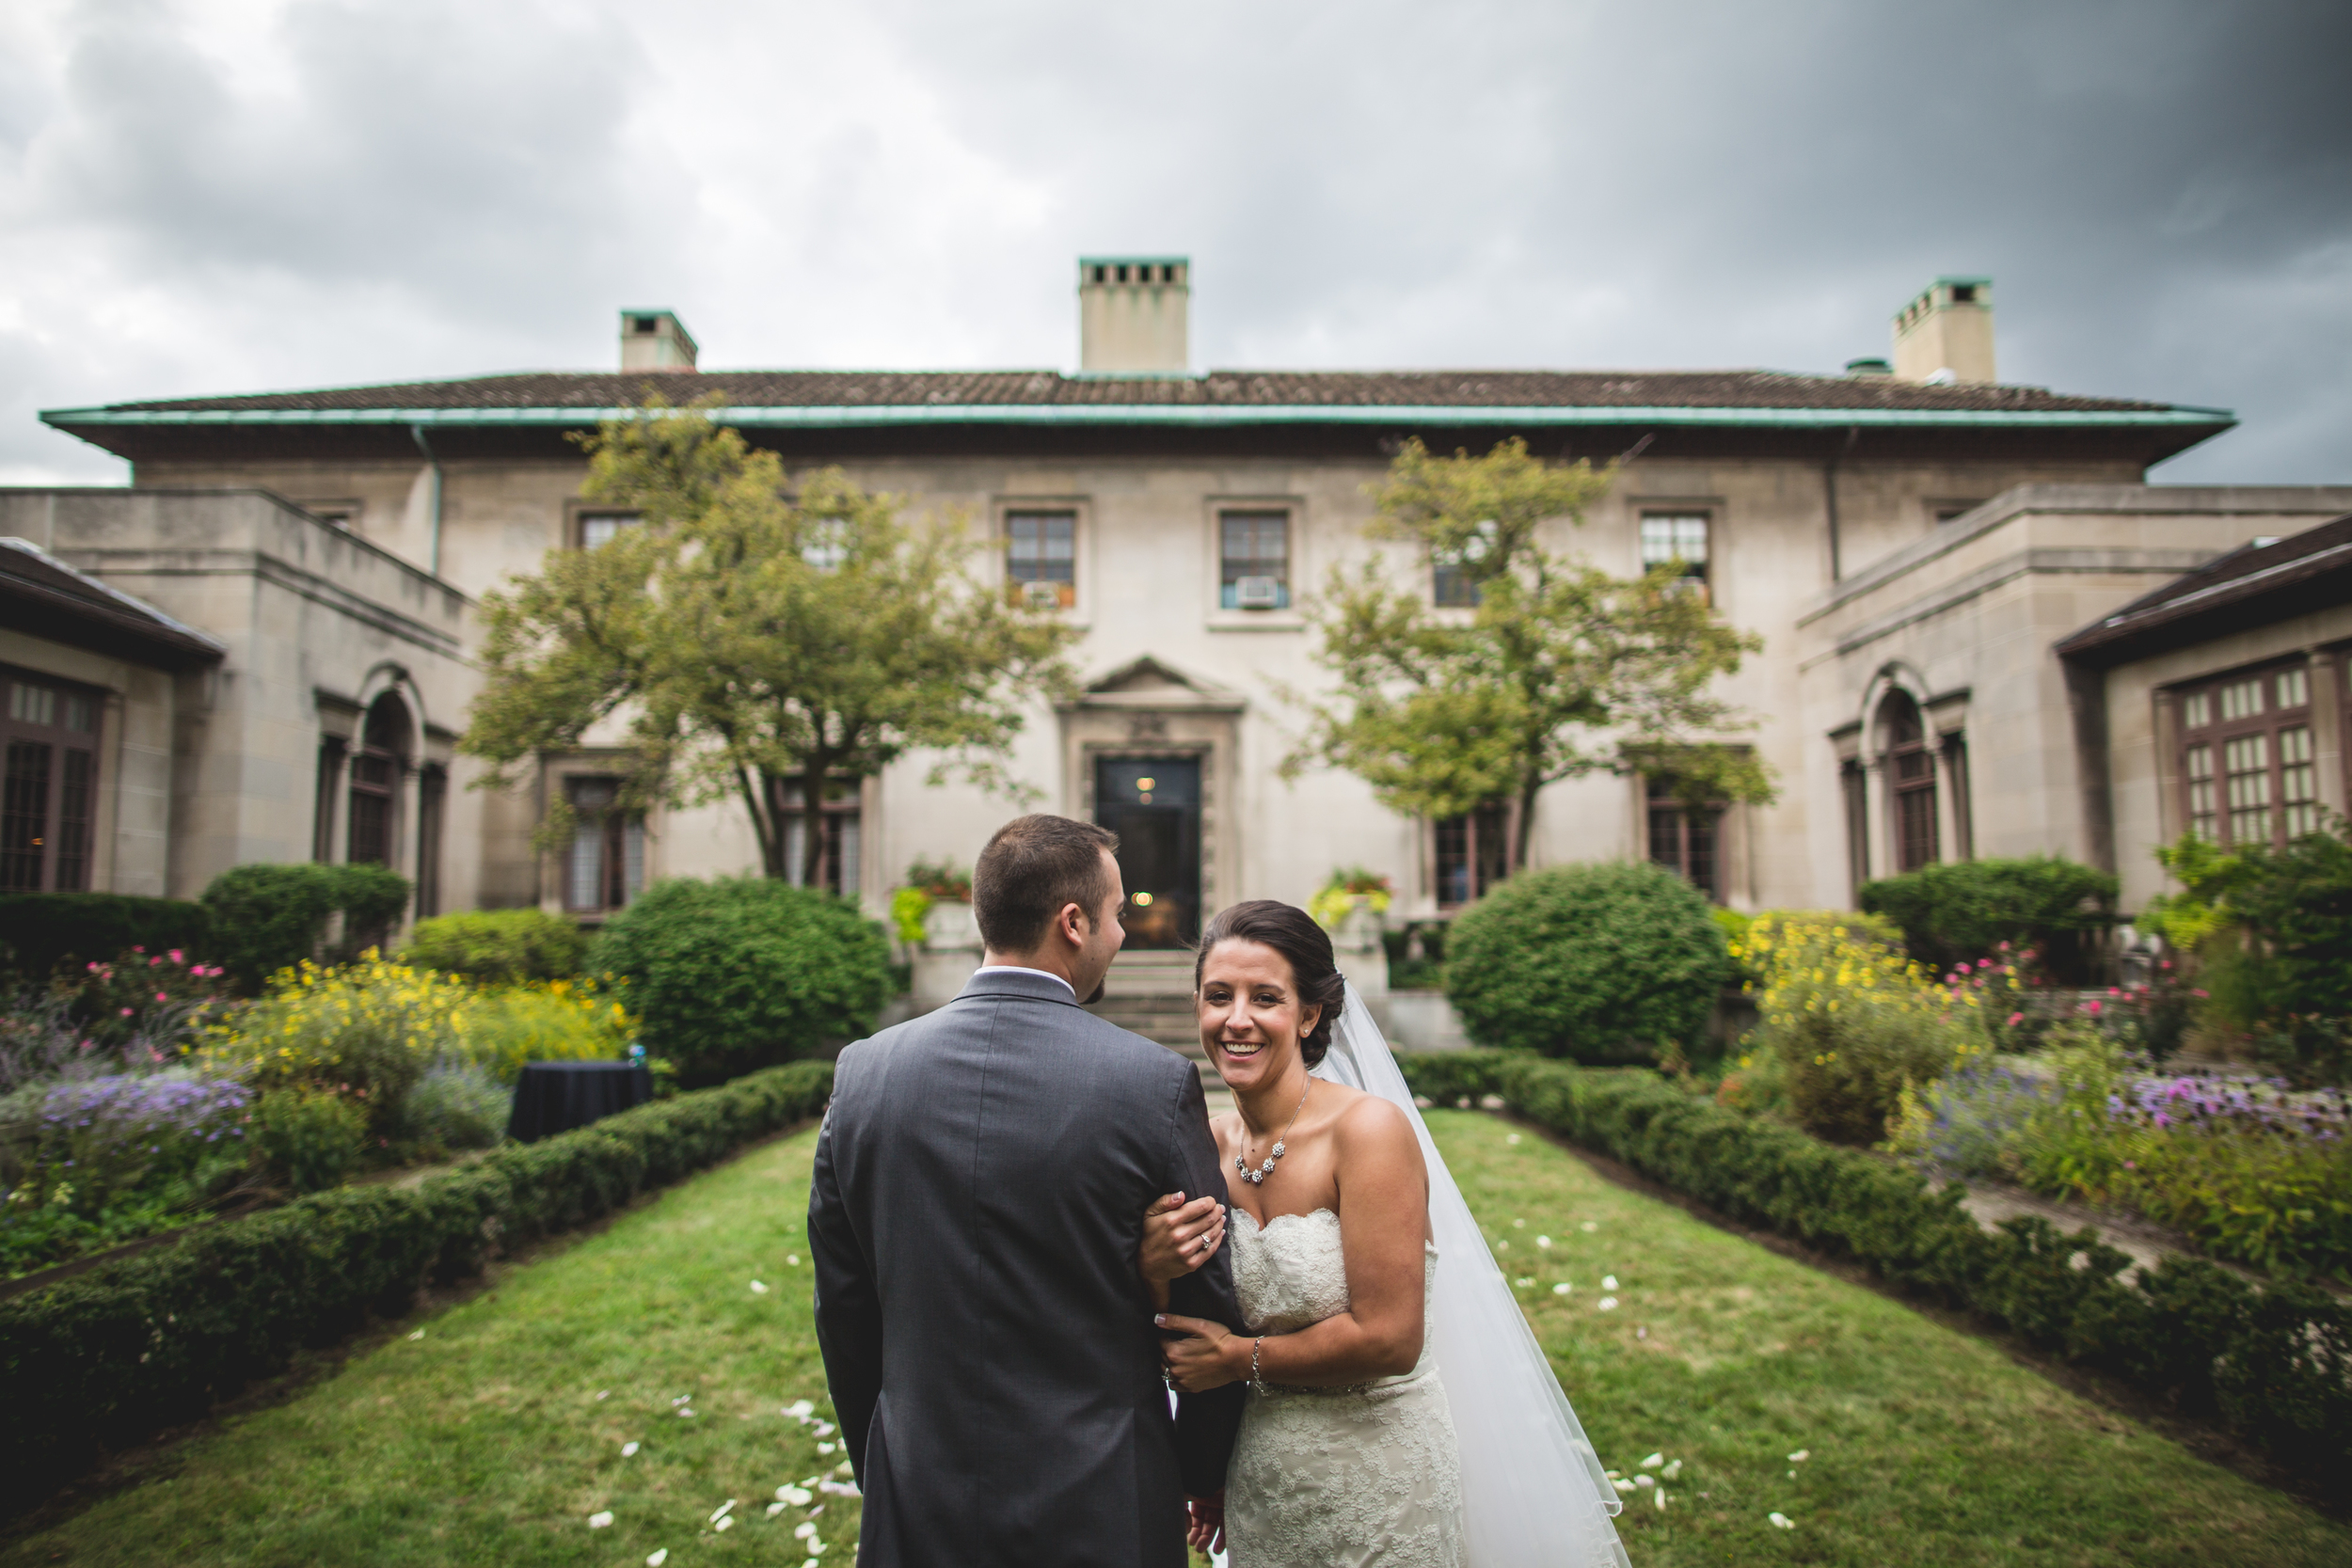 Cleveland Wedding Photographer | Wedding at wester reserve historical society